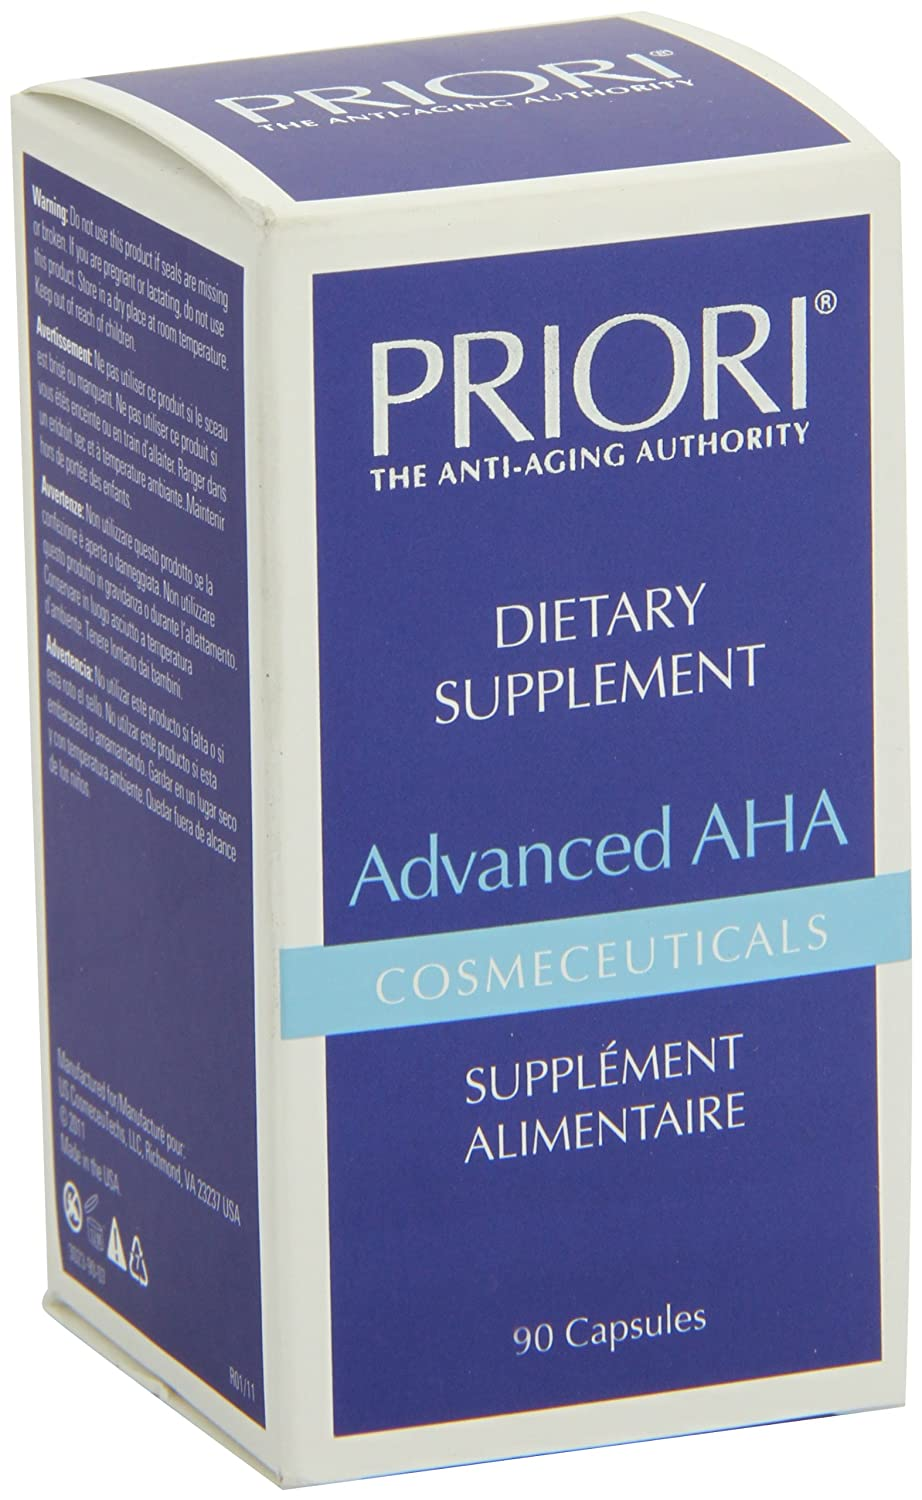 Amazon.com: Priori Advanced Aha Dietary Supplement Capsules, 90 Count: Health & Personal Care